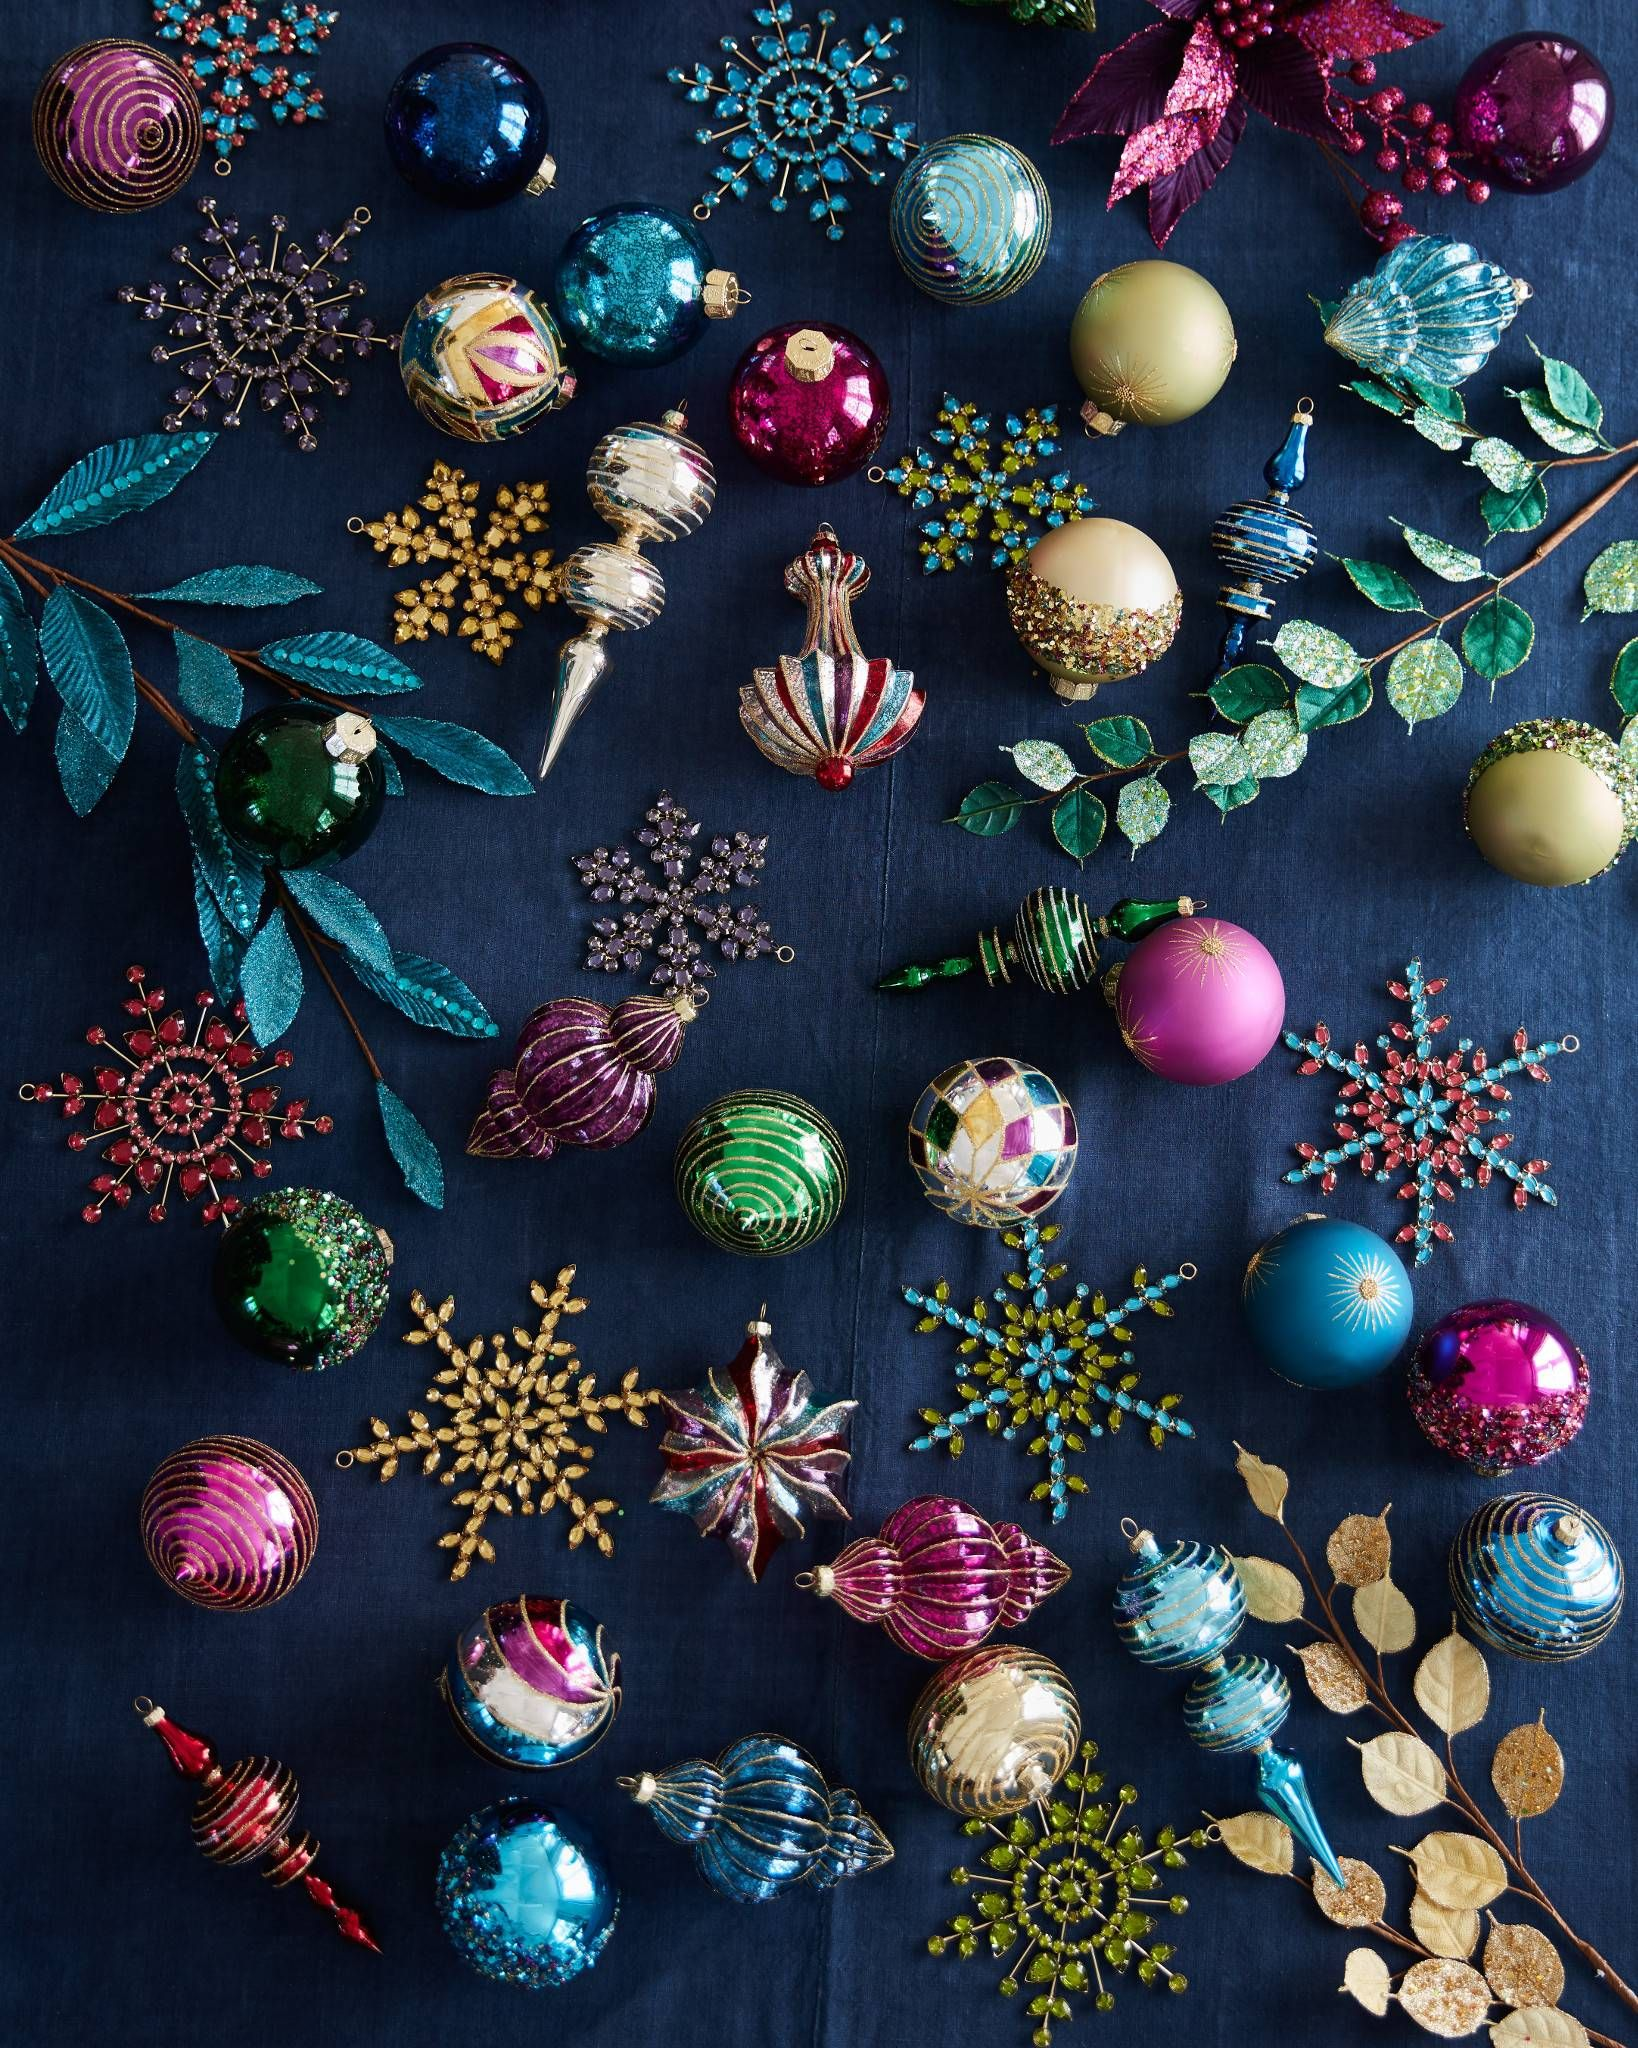 Inspired By Precious Gems This Christmas Ornament Set Features Balls Finials An Christmas Ornament Sets Christmas Tree Colour Scheme Colorful Christmas Tree